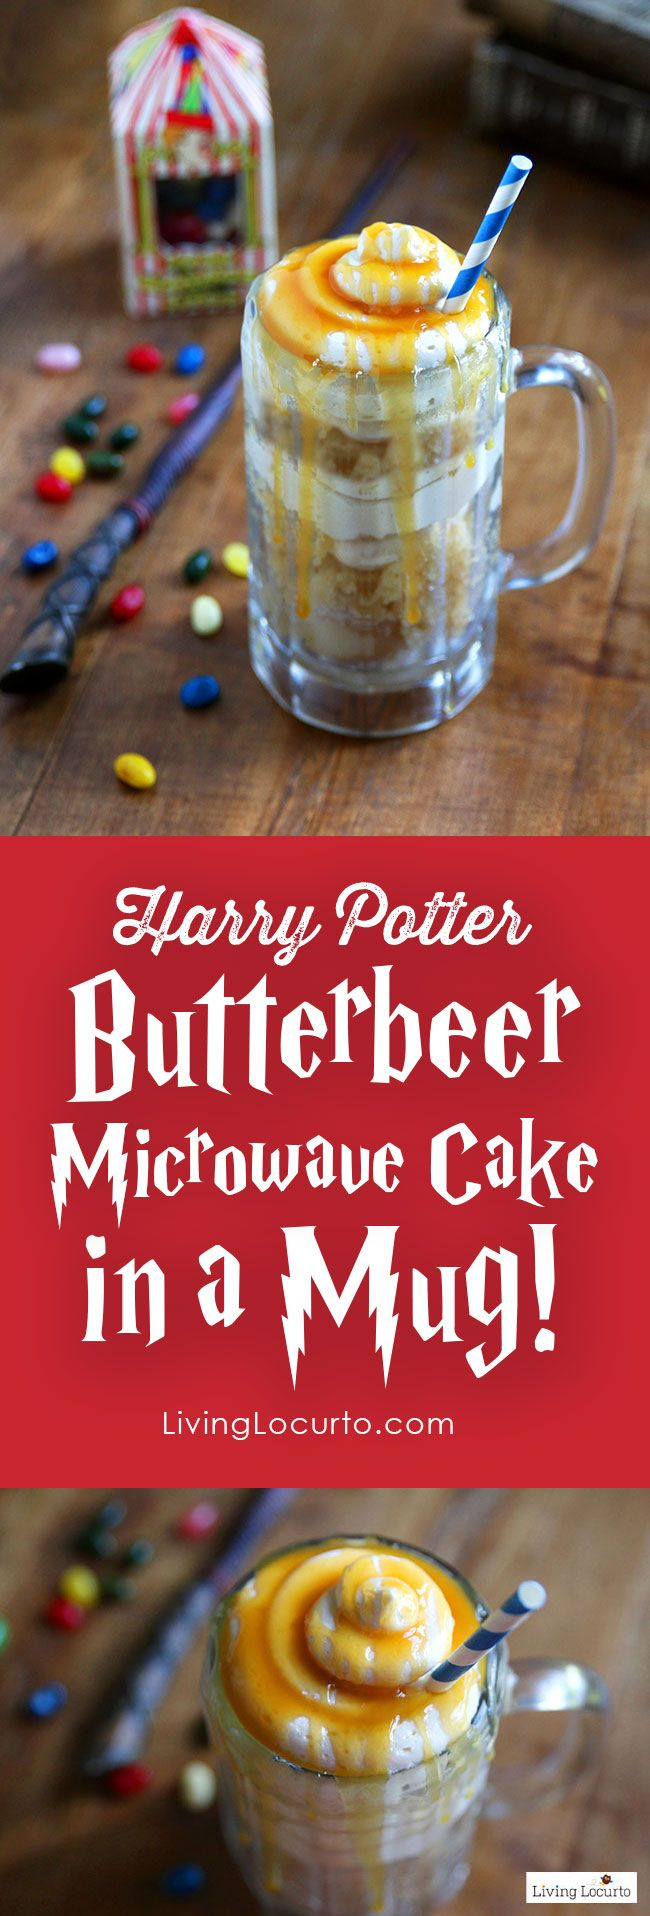 Homemade Harry Potter Butterbeer - Microwave Cake in a Mug. Easy recipe that's perfect for a Harry Potter Themed Party. LivingLocurto.com